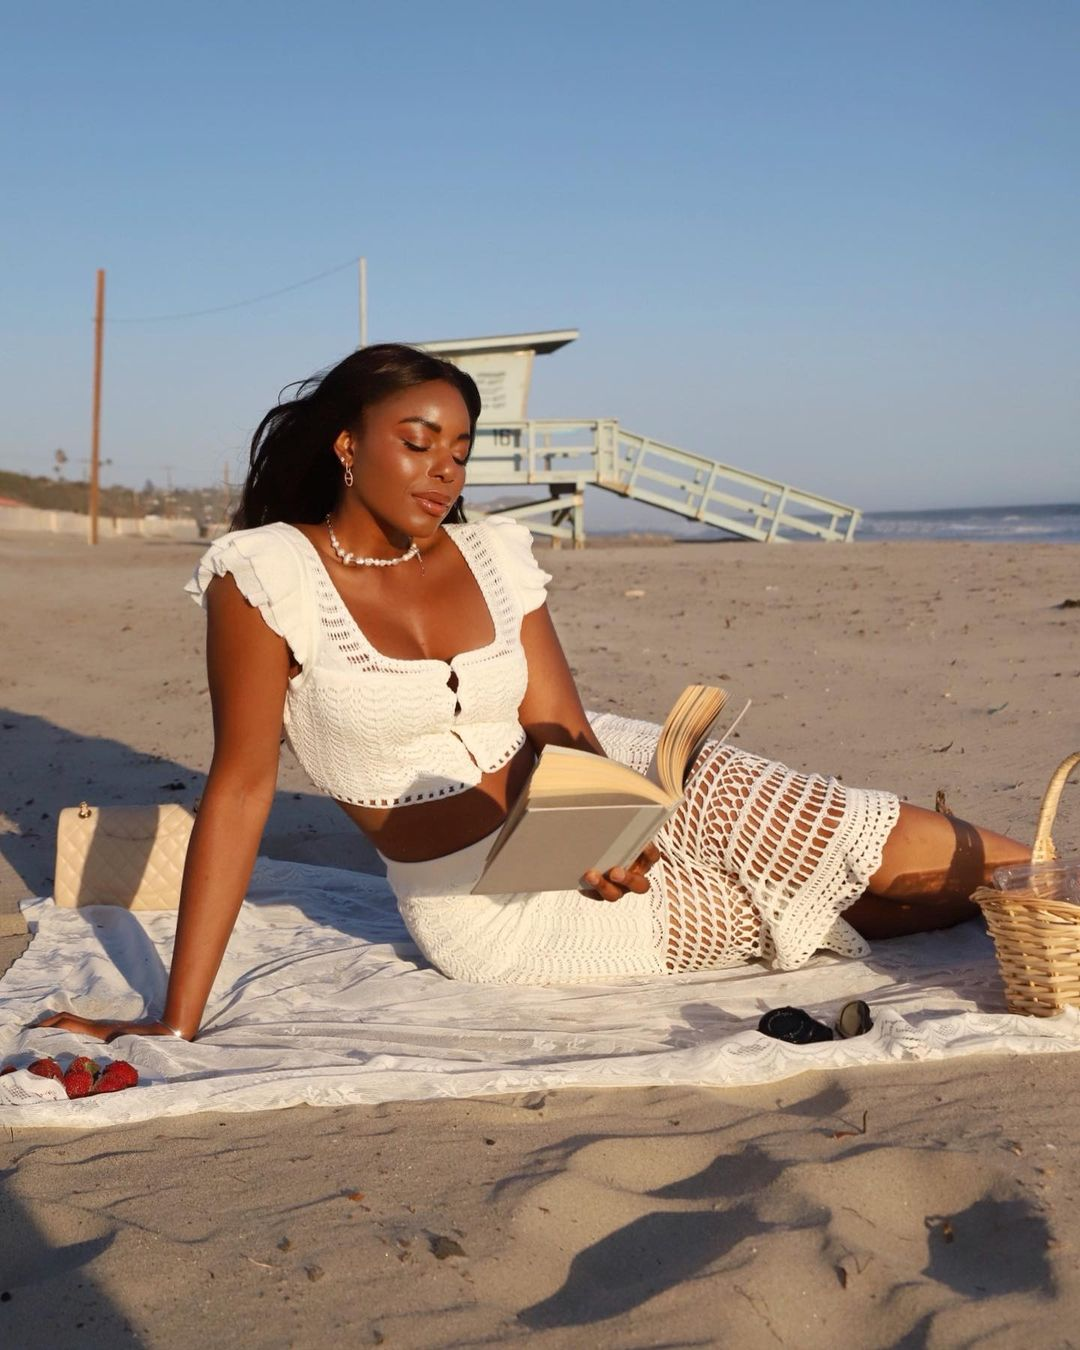 Kaye Bassey in matching crochet set. Reading a book while on the beach. Labor Day Outfit Ideas